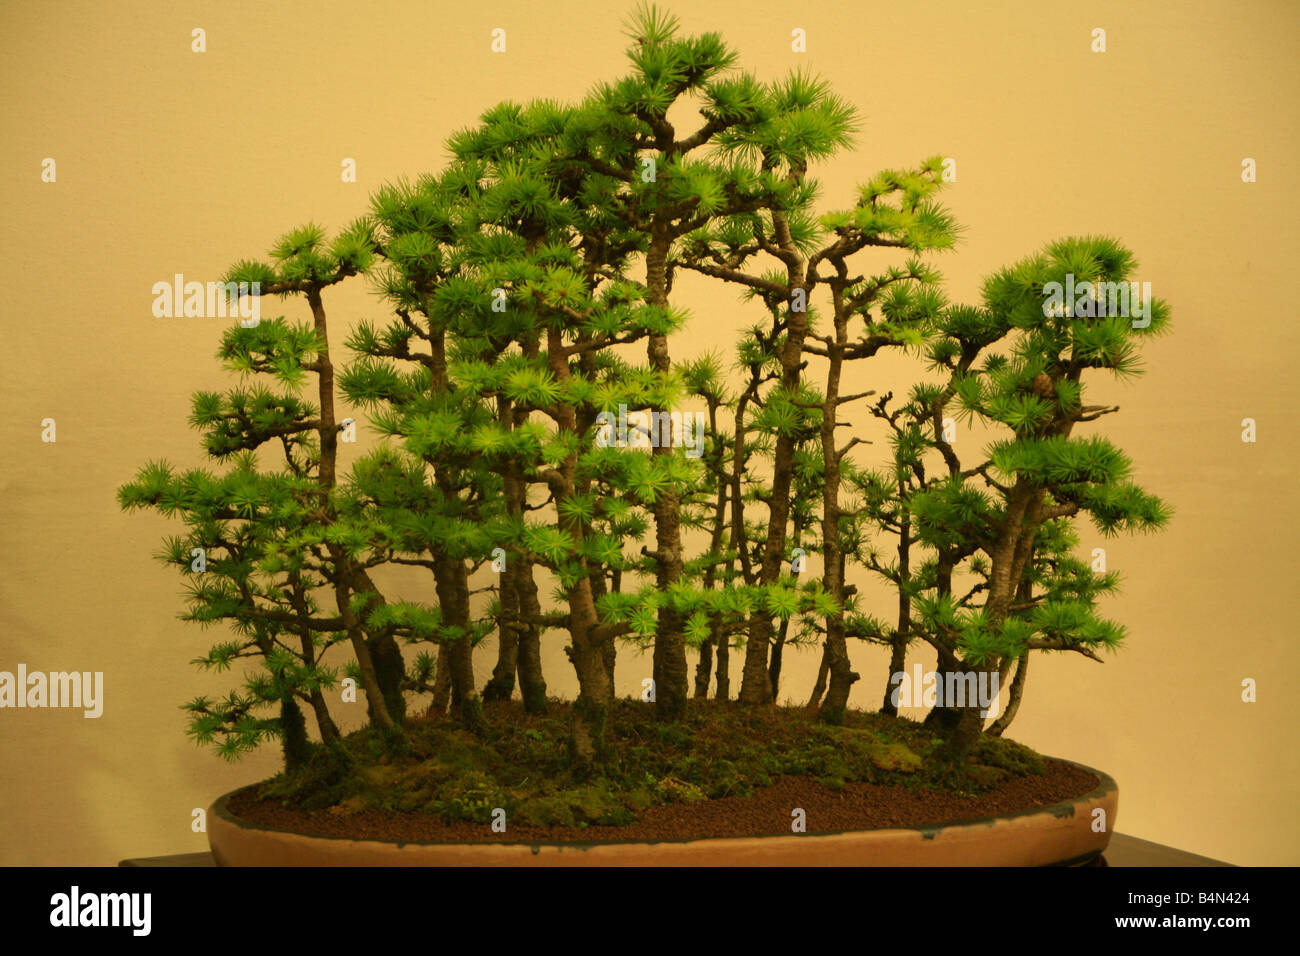 Bonsai Forest - Stock Image